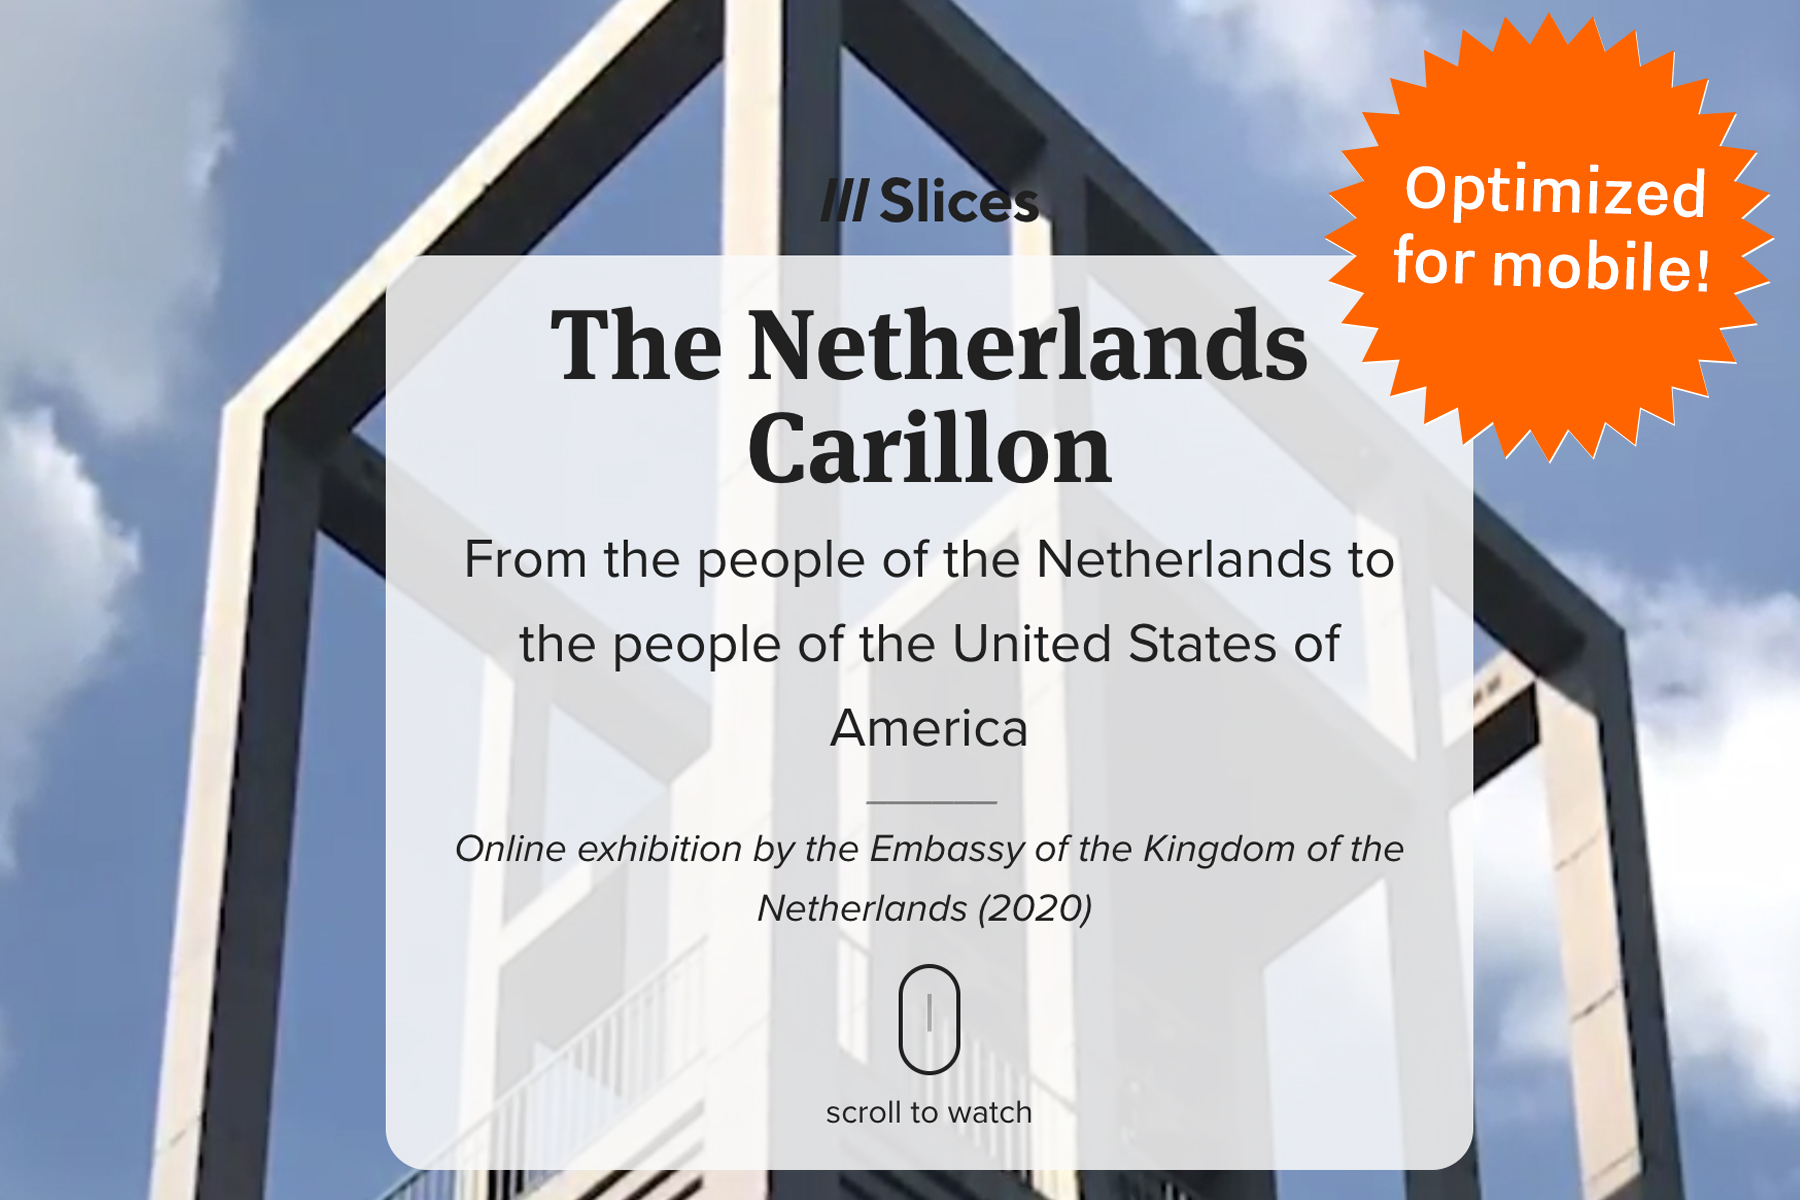 Online Exhibition: The Netherlands Carillon